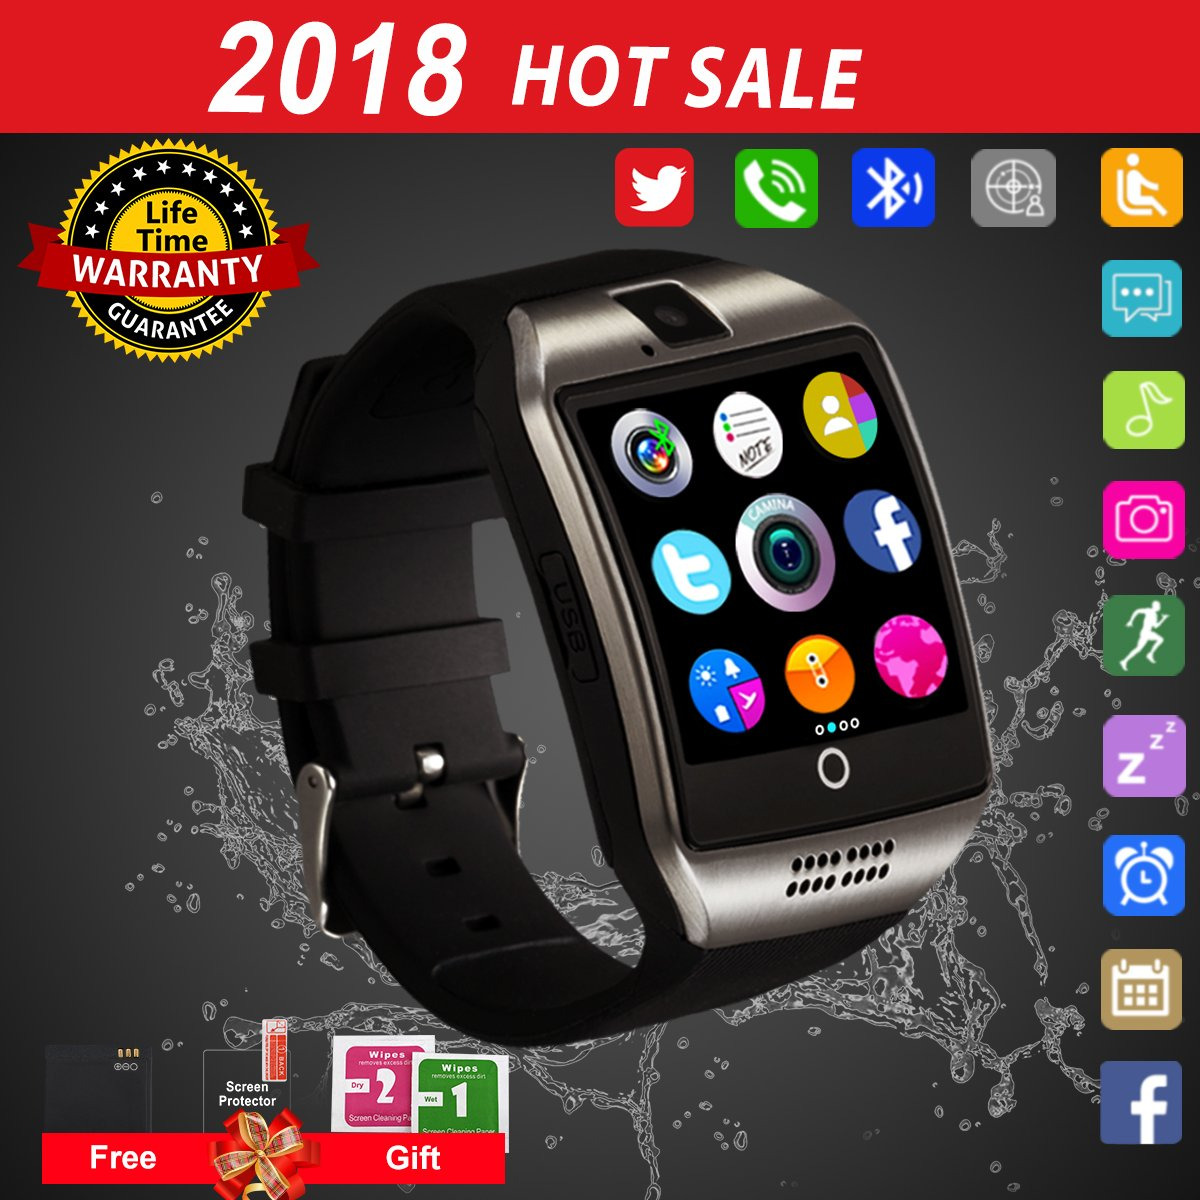 Smart Watch Android Phones,Waterproof Smart Watches,Android Smartwatch Touchscreen Camera,Bluetooth Watch Phone SIM Card Slot Compatible Samsung iOS iPhone X 8 7 6 6S Plus 5 Men Women by Luckymore